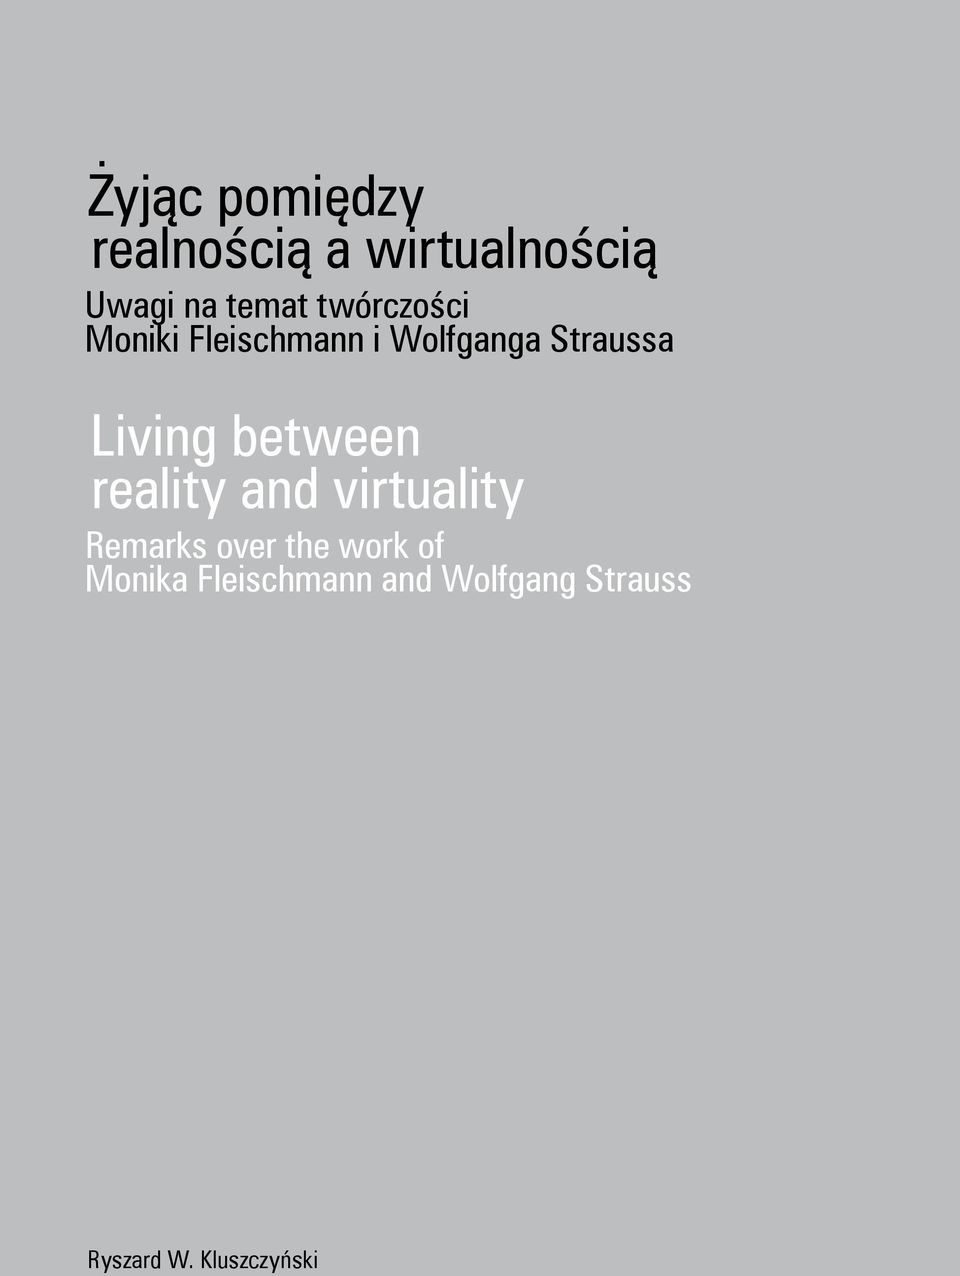 between reality and virtuality Remarks over the work of